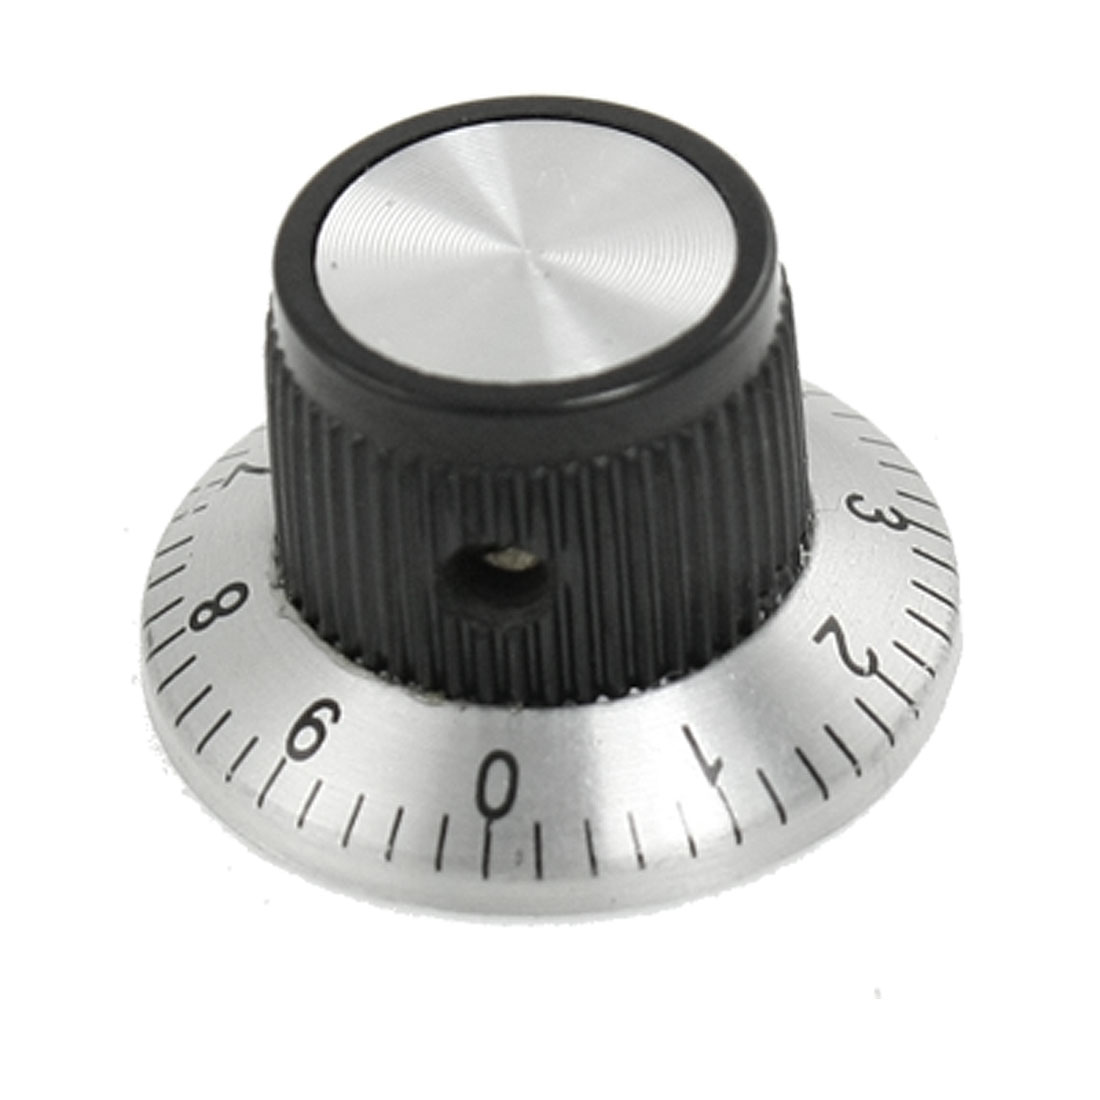 "Volume Control 0.59"" Top Dia 0.236"" Shaft Digits Potentiometer Knob"